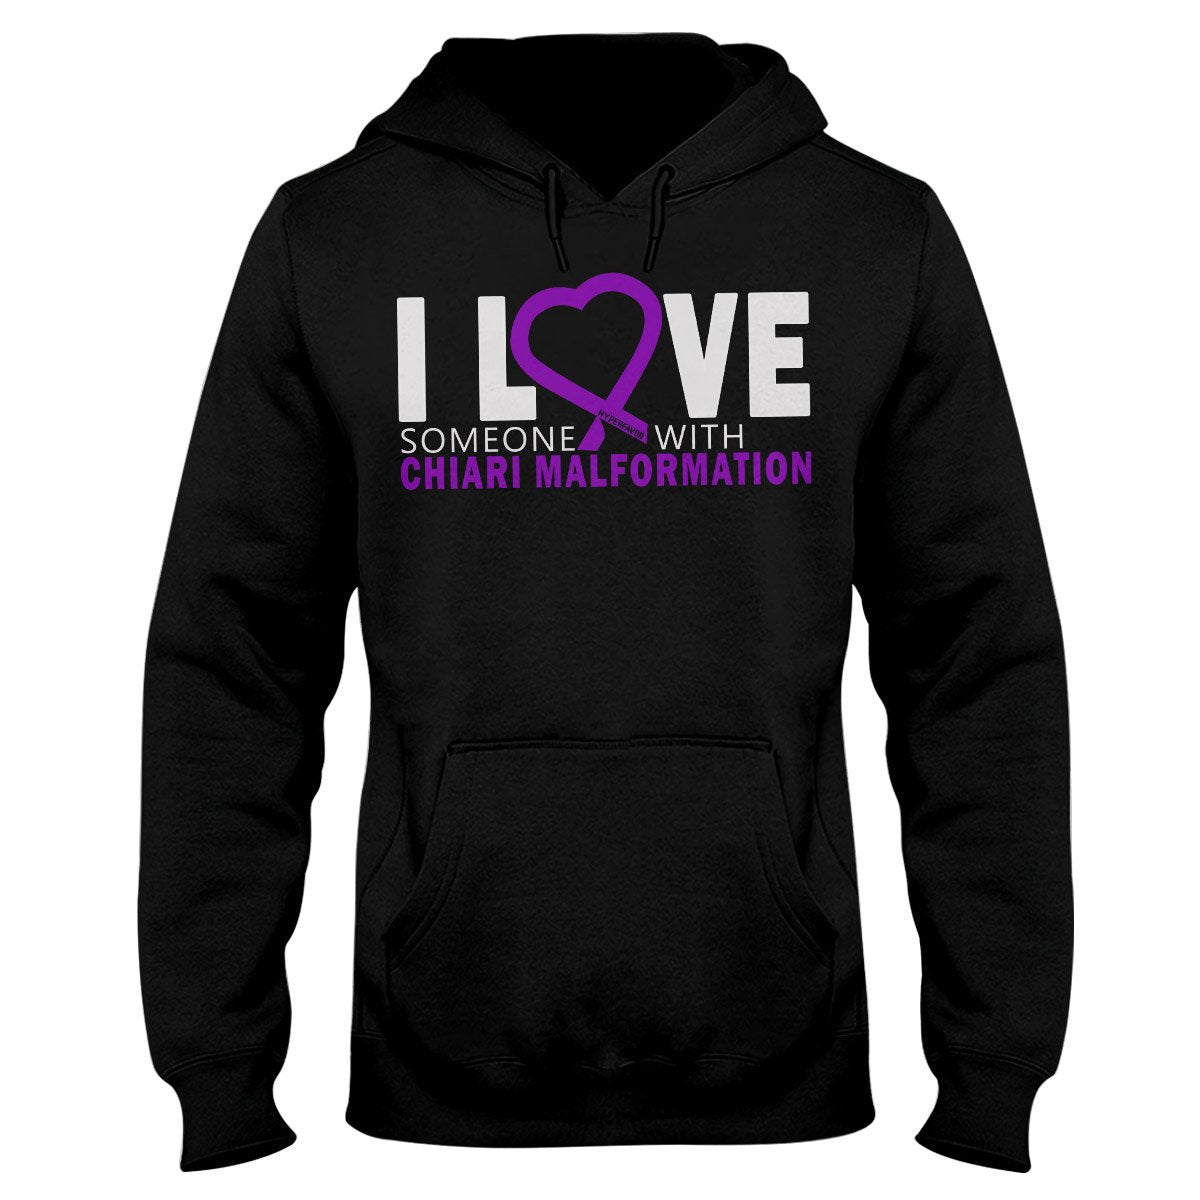 I Love Someone With Chiari Malformation Hoodie